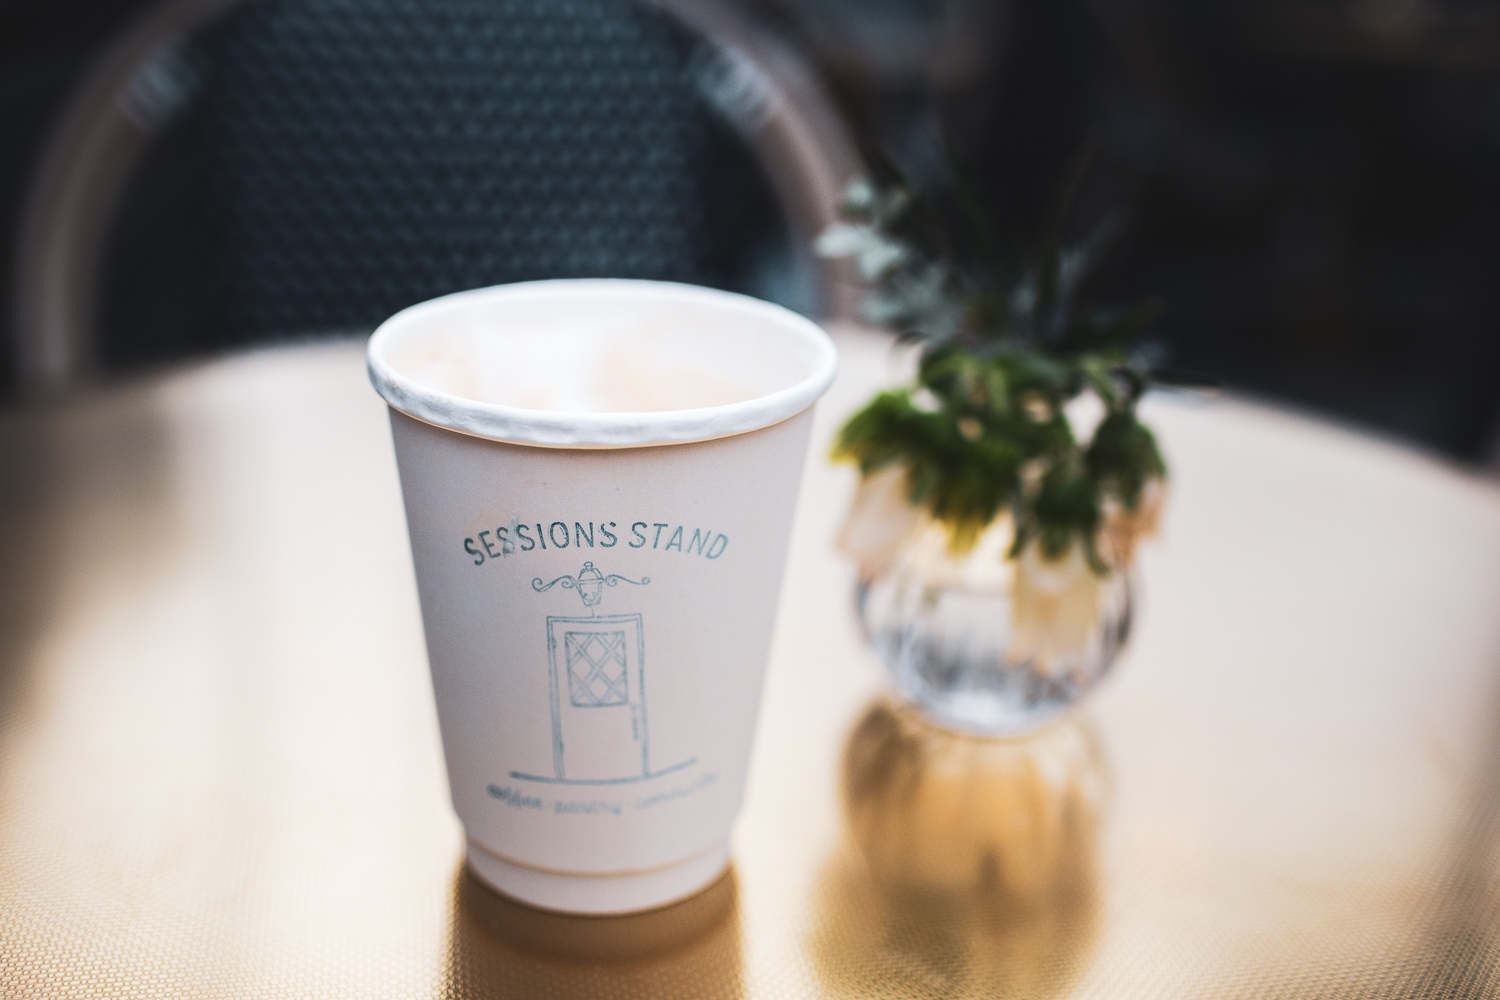 Sessions Stand logo on the cappuccino cup.